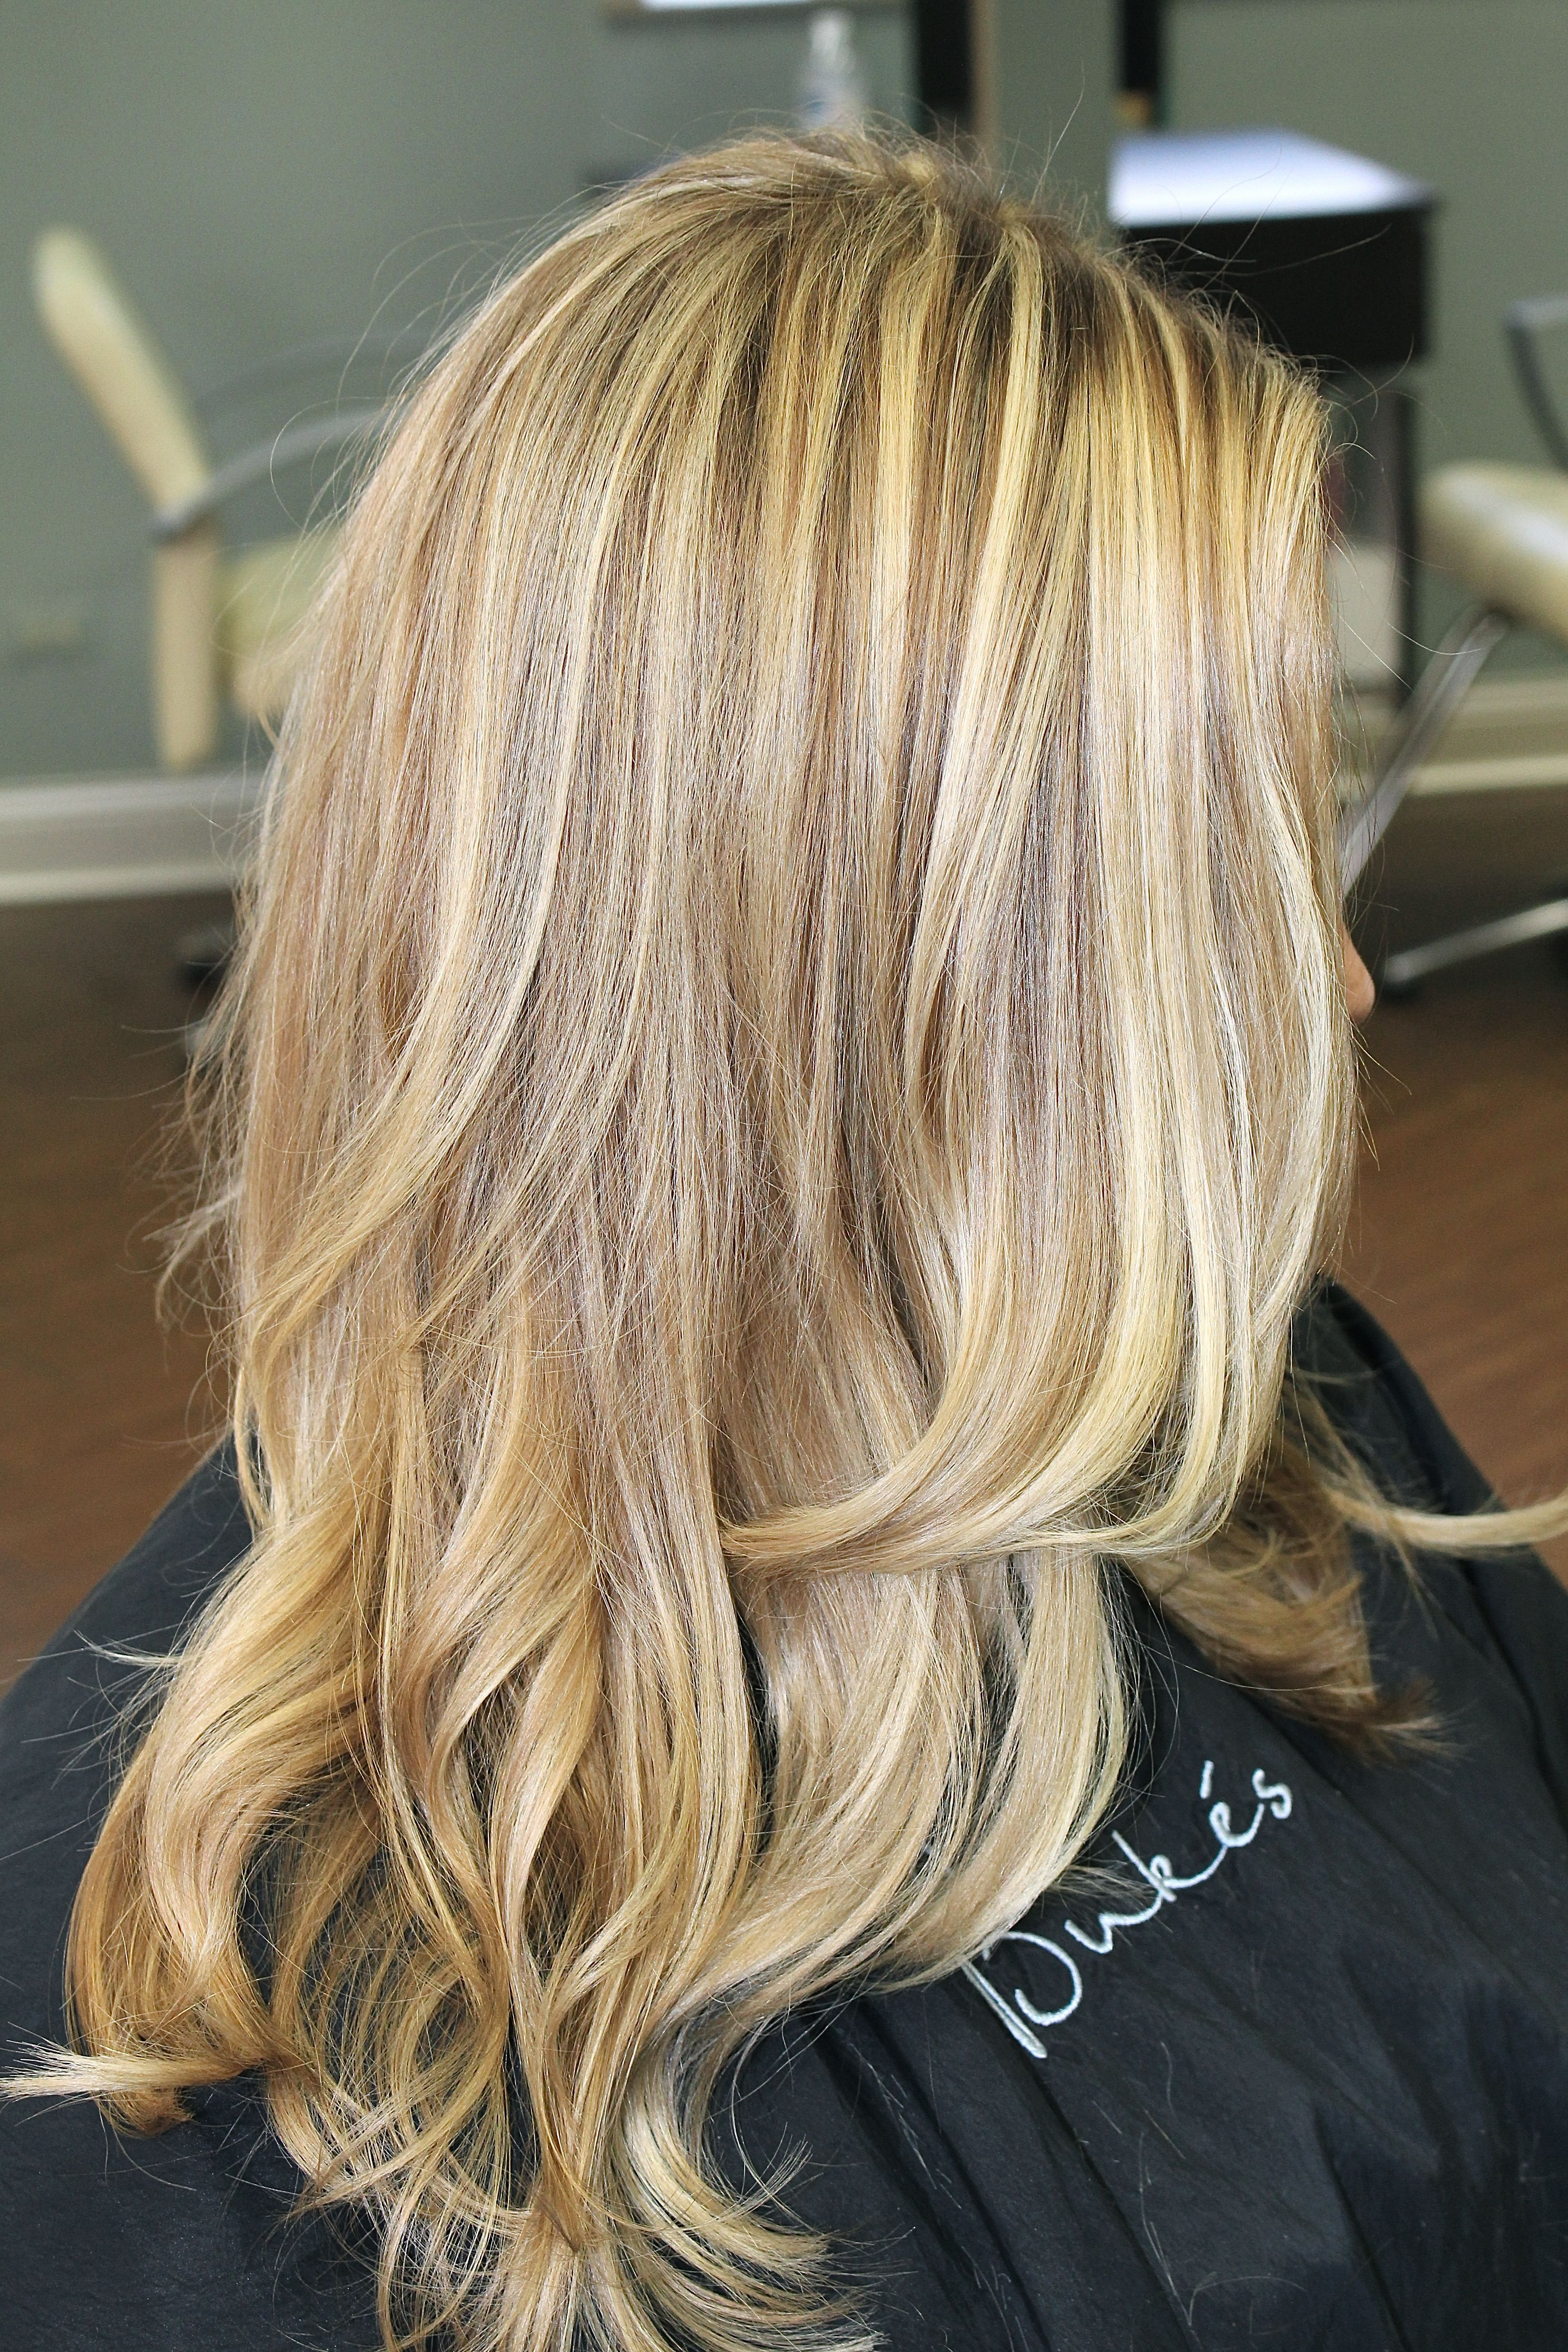 Highlights Blond Golden Blonde Highlights On Jenny Fashion Hair Blonde